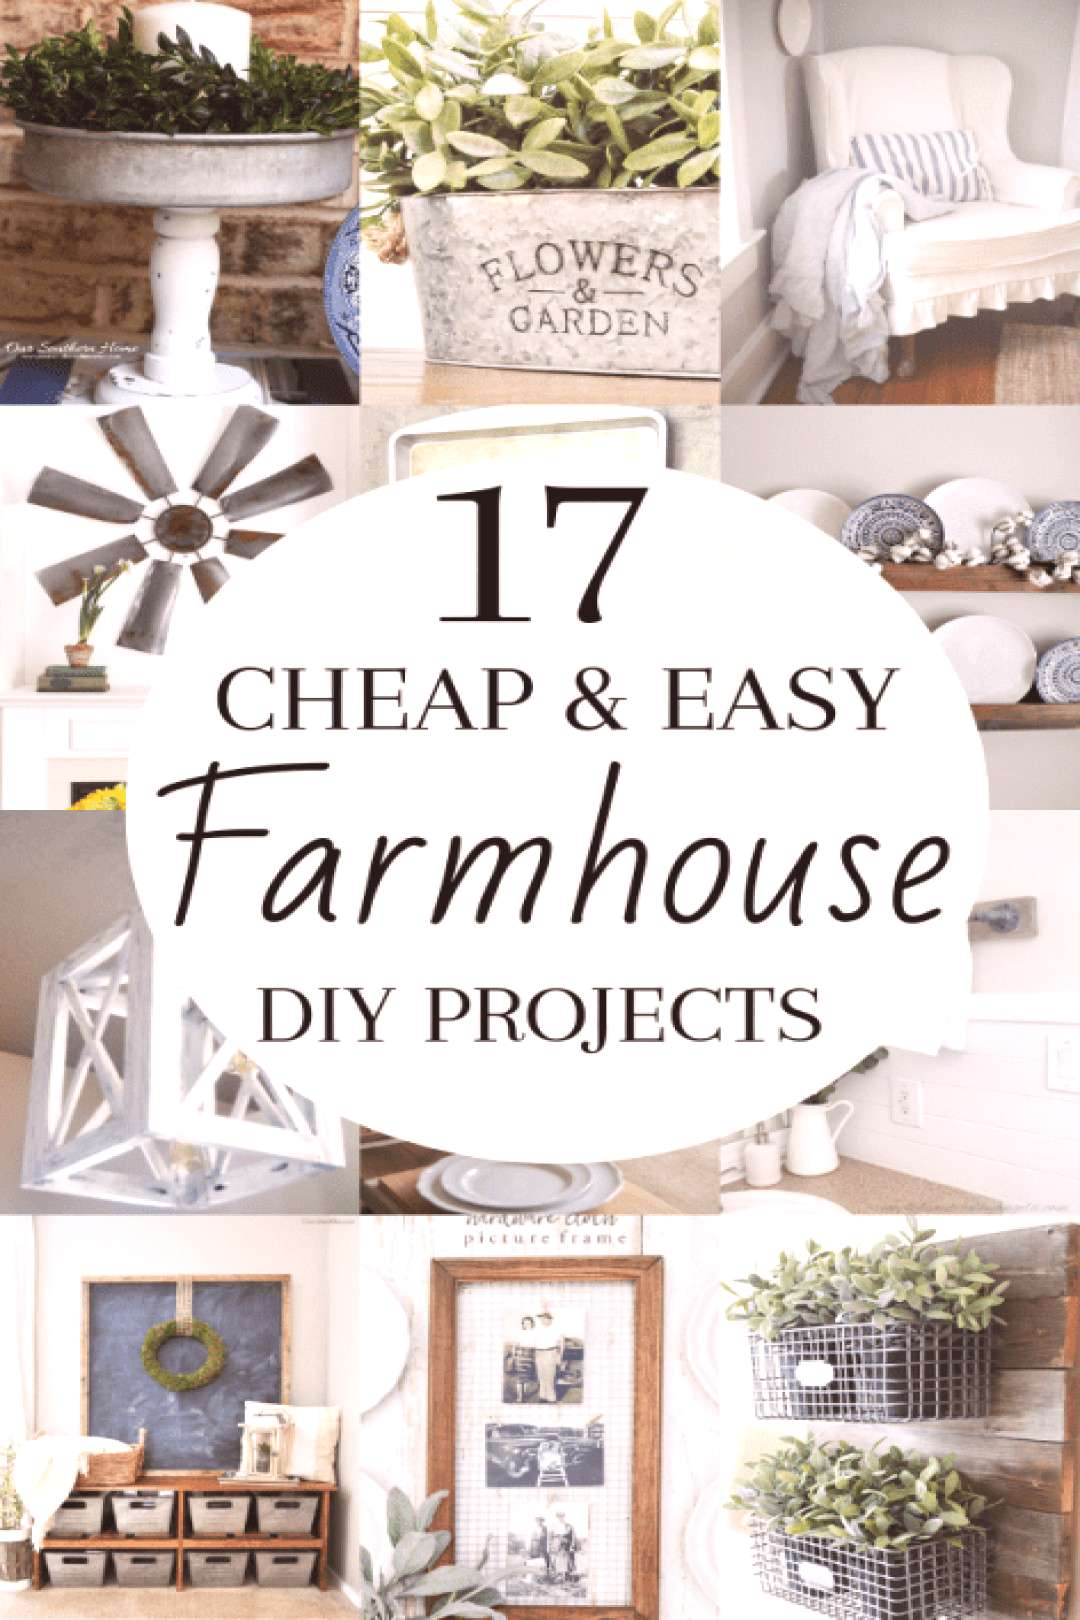 DIY Rustic Farmhouse Decor Projects for Your Country Chic Cottage. Joanna Gaines would even be amaz